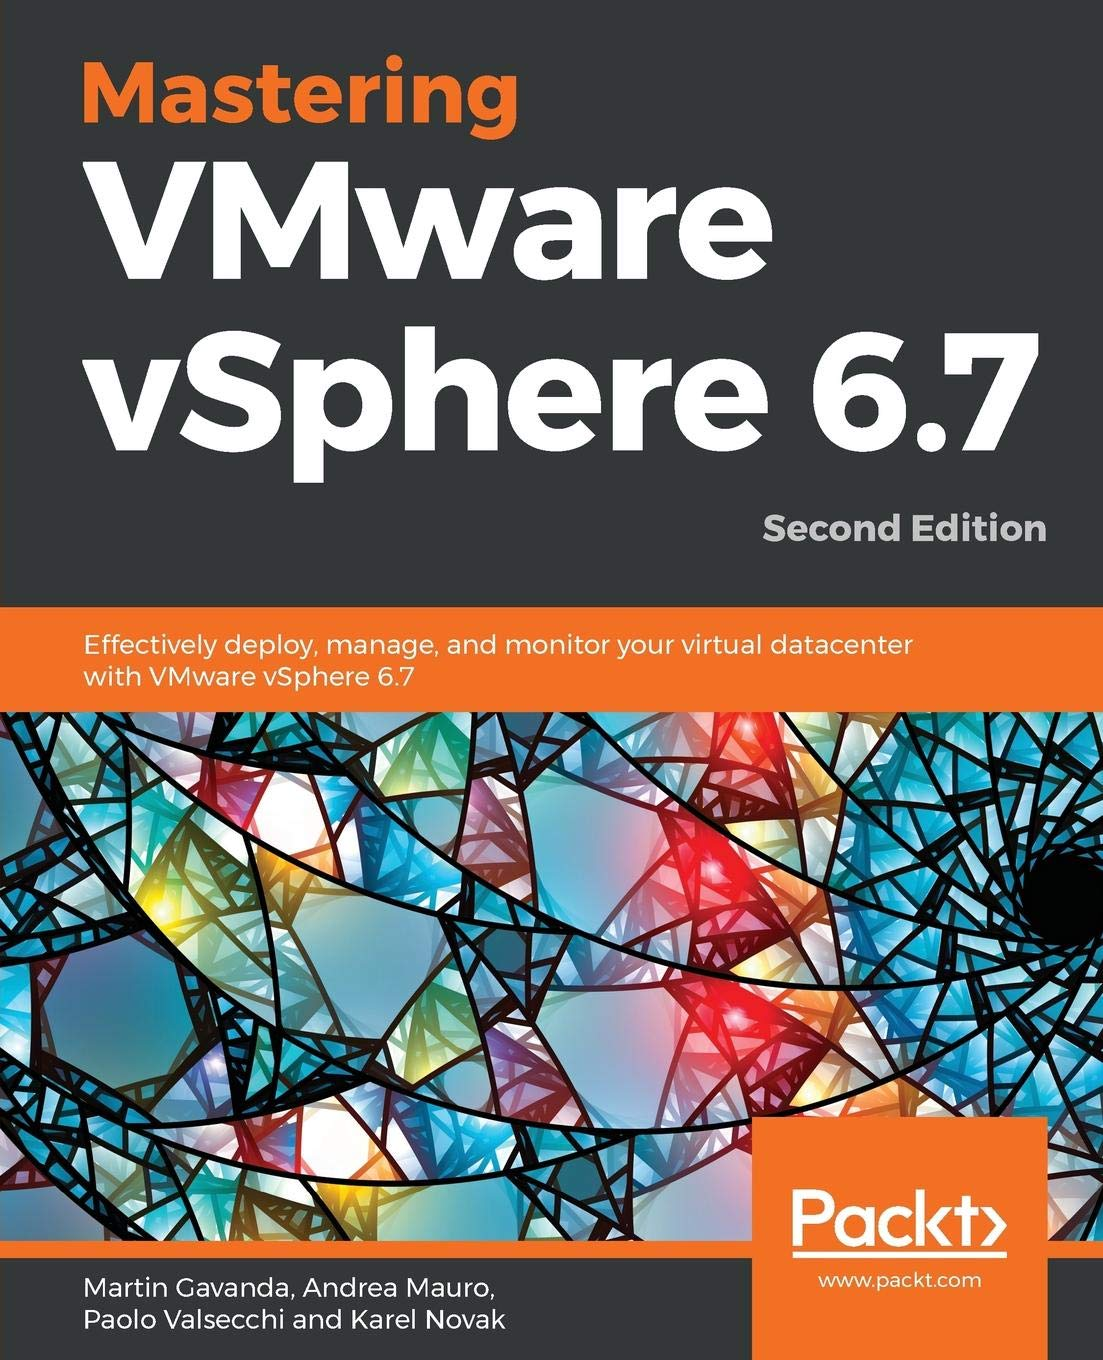 Mastering VMware vSphere 6.7: Effectively deploy, manage, and monitor your virtual datacenter with VMware vSphere 6.7, 2nd Edition por Martin Gavanda